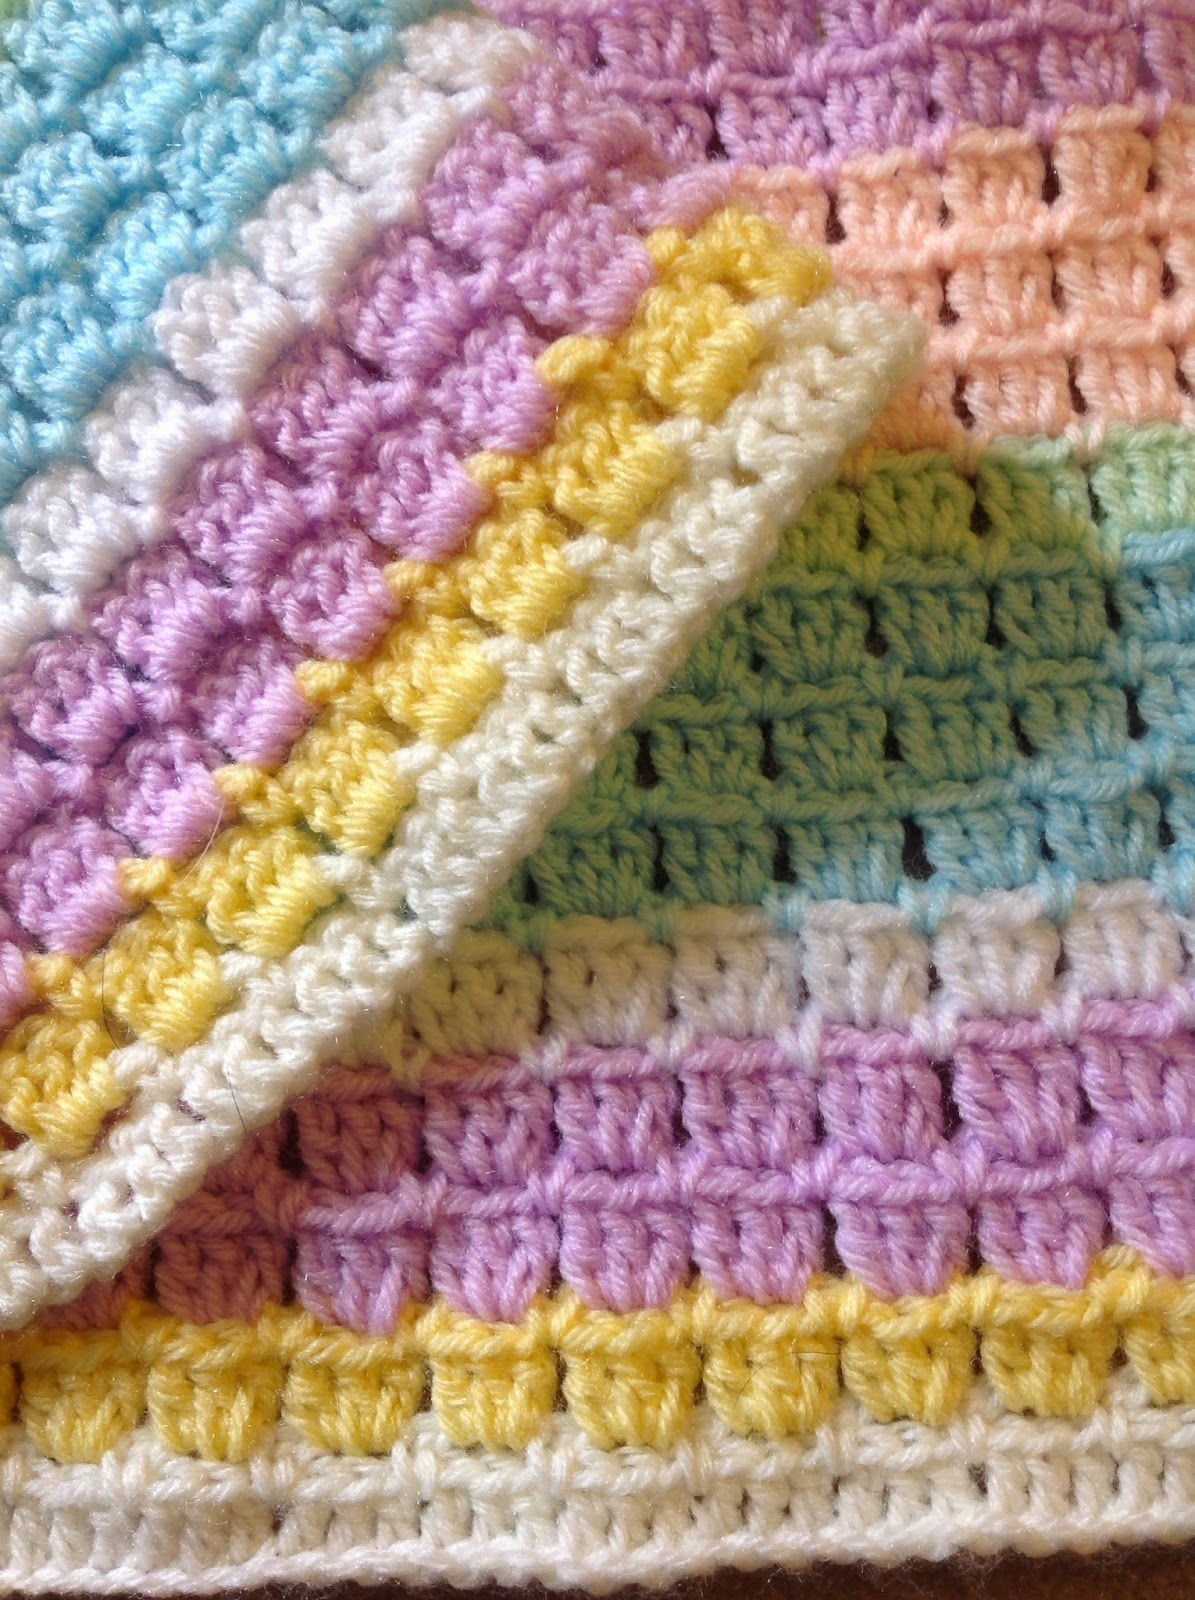 Oyas World Crochet Knitting Crochet Block Stitch Baby Blanket